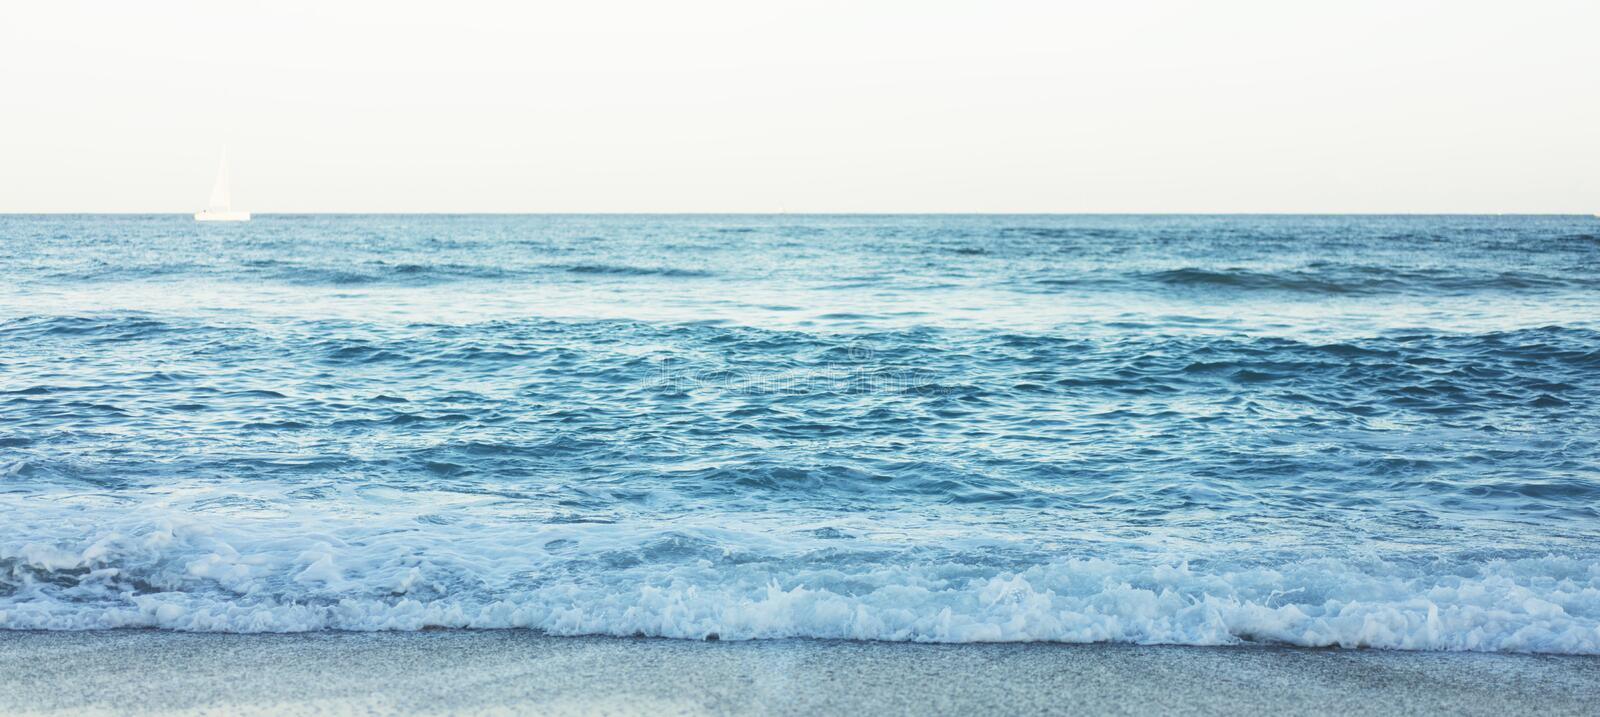 Waves of blue quiet ocean coast landscape. Background sea scape and sand beach coastline. Panorama horizon perspective view nature stock photography